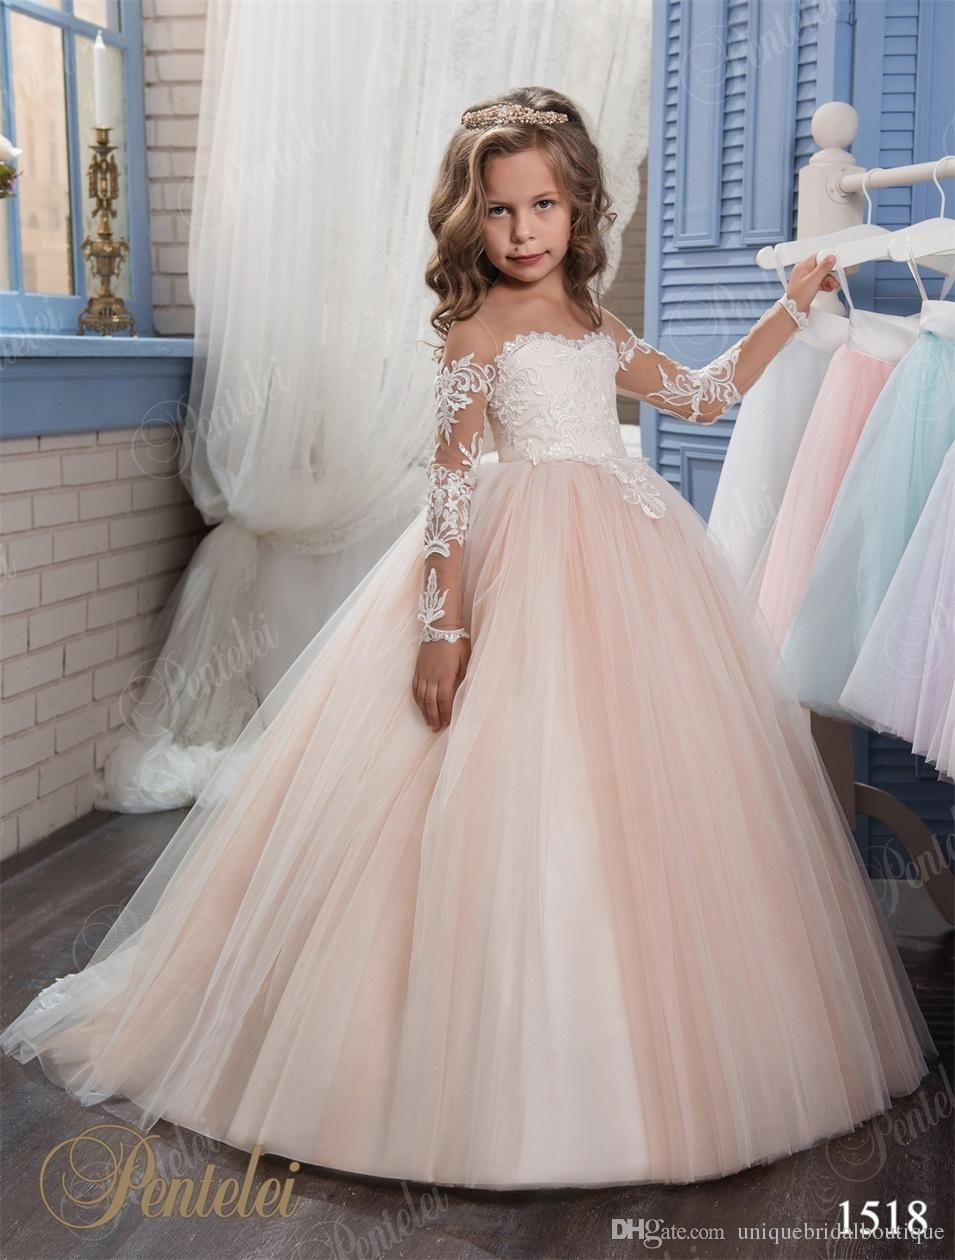 Kids wedding dresses 2017 pentelei with illusion long for Wedding dresses for young girls